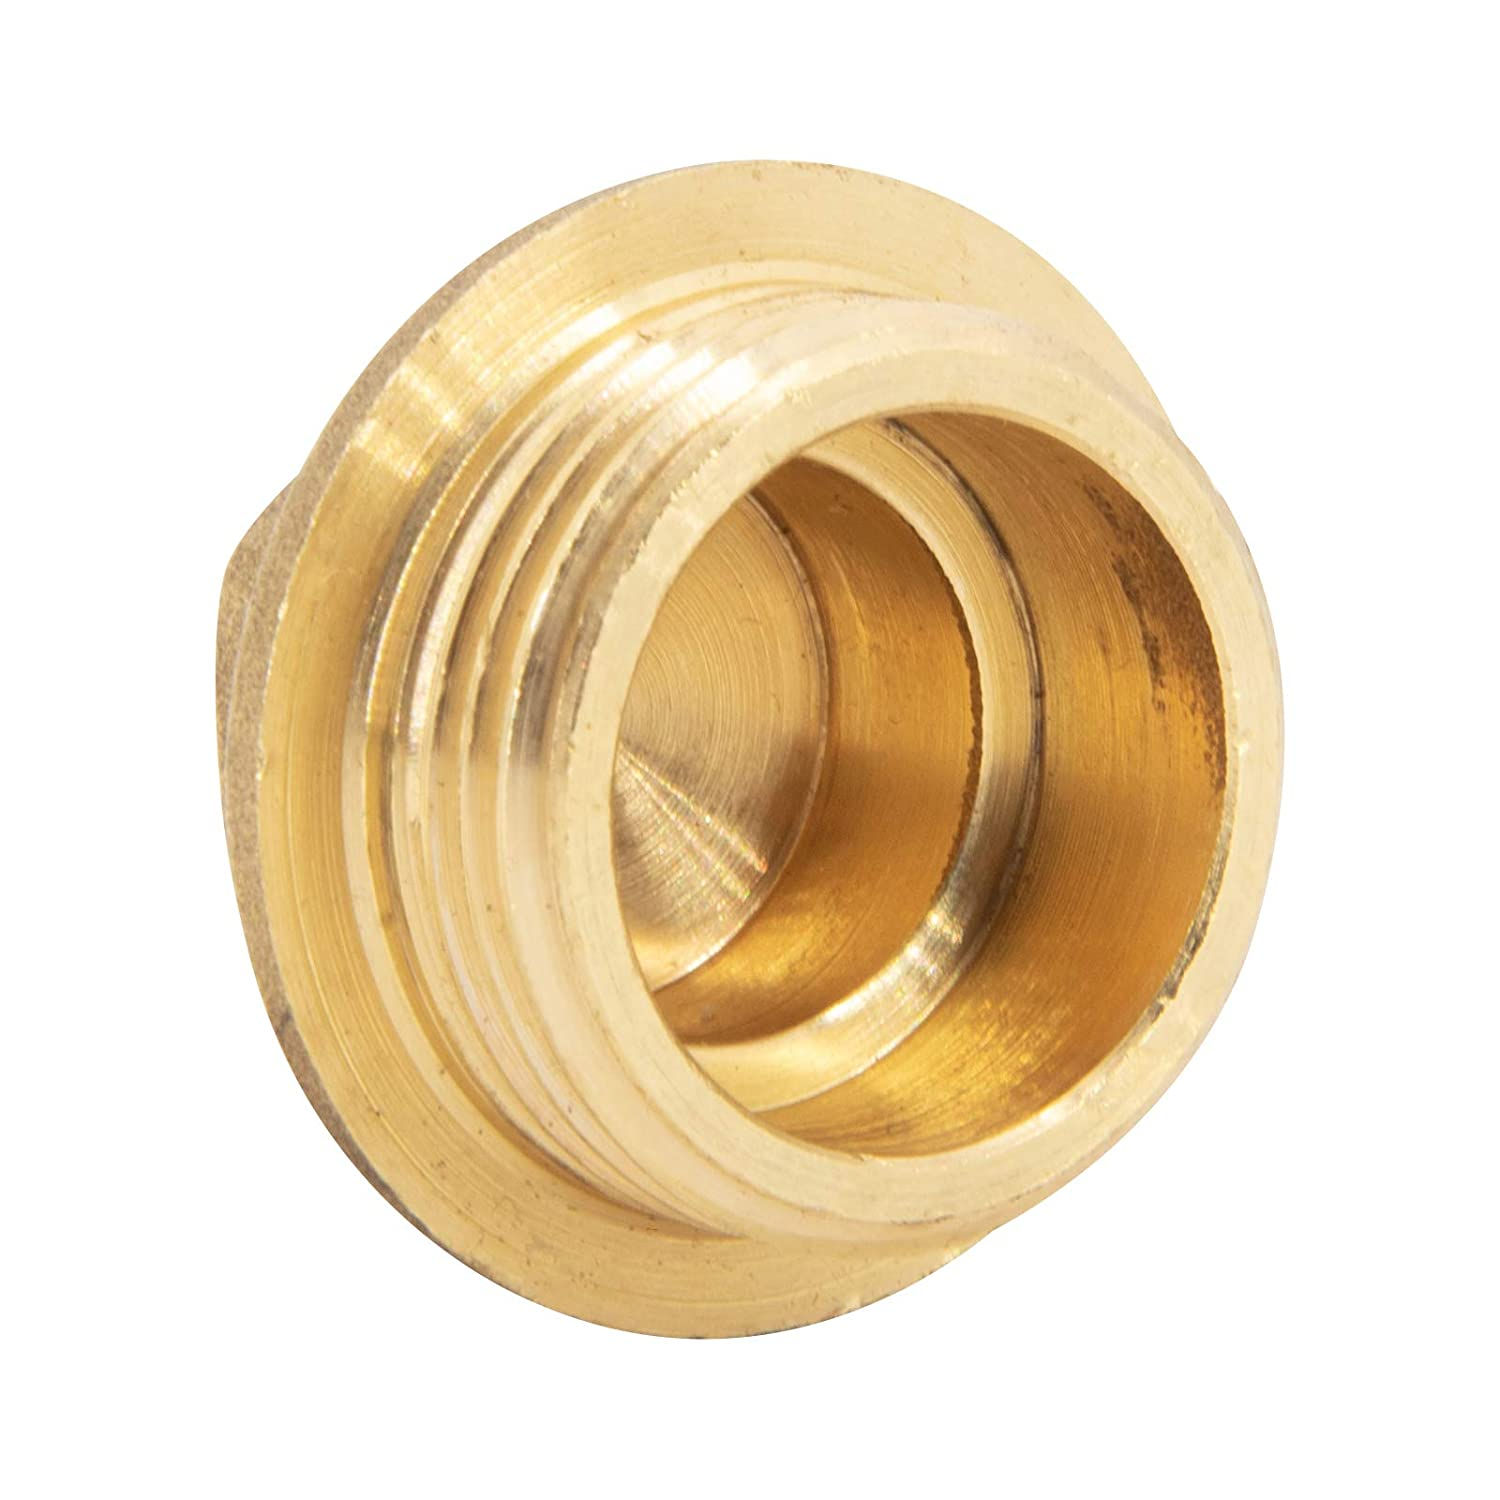 1 blanking plugs adapters or pipe plugs for industry 1 trade and household outlet preventer Brass plug hex